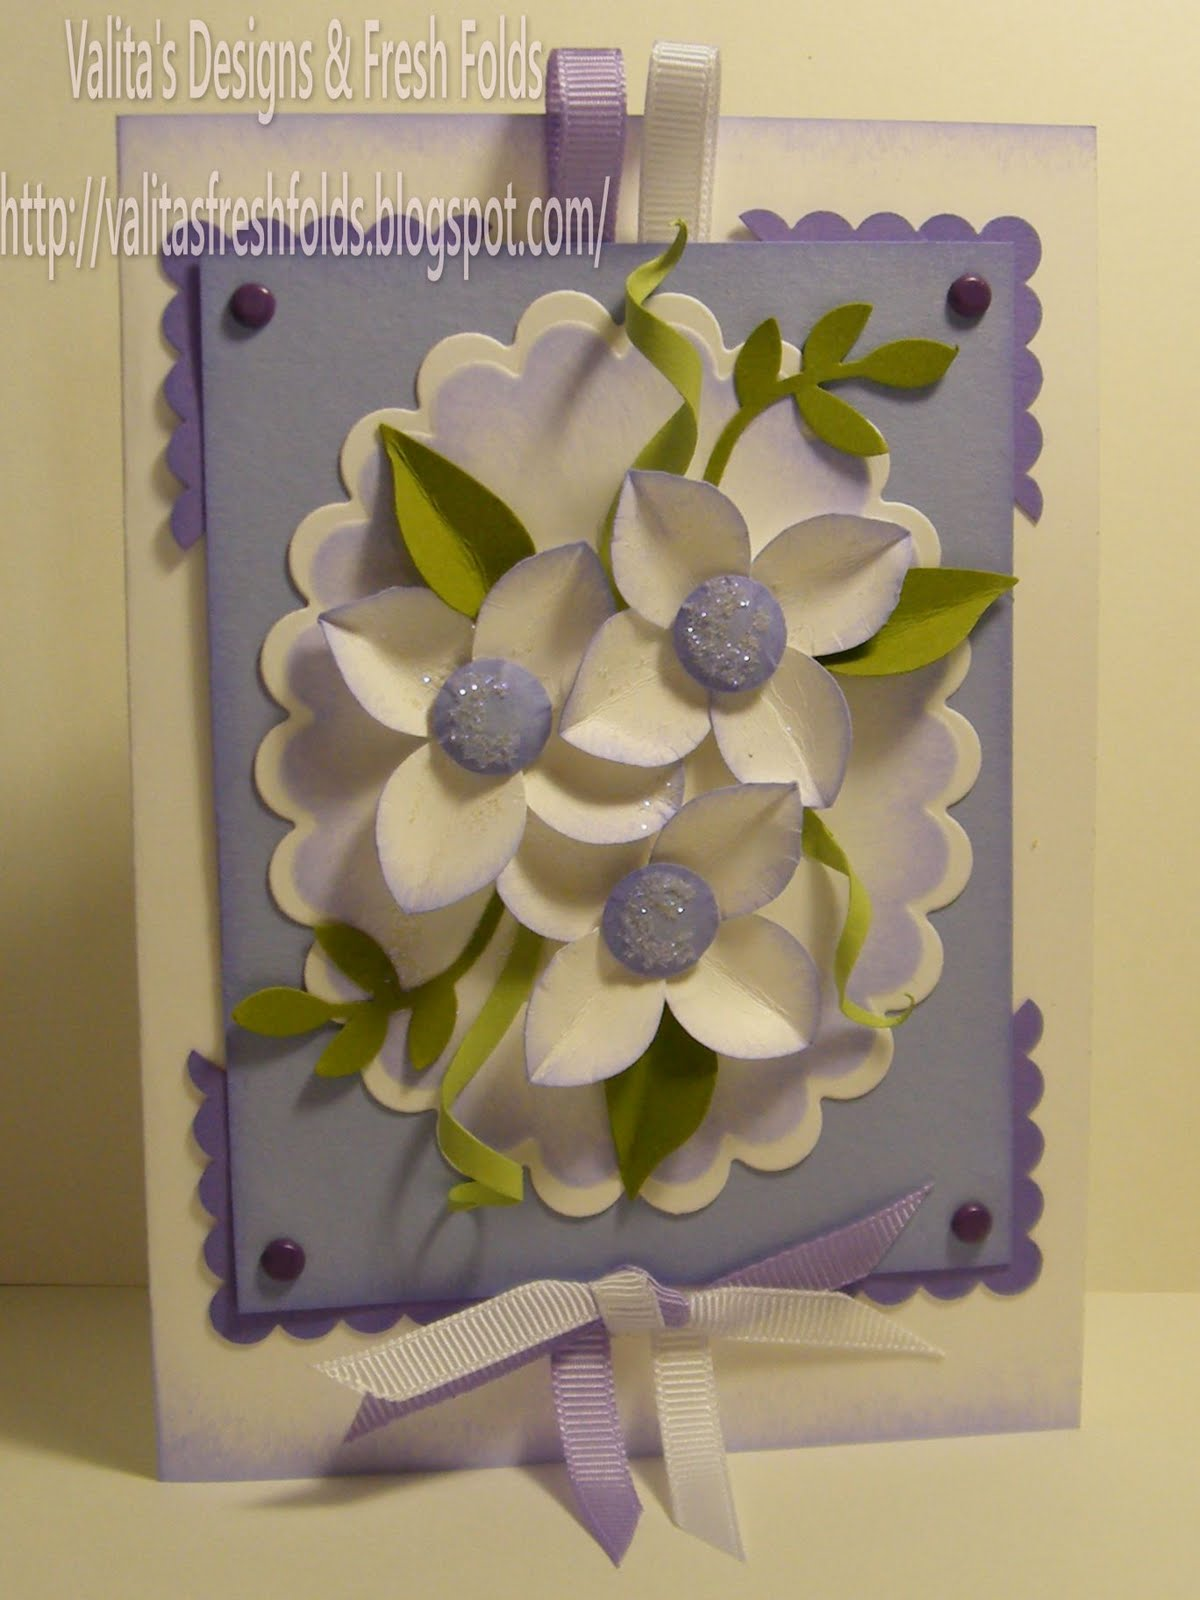 Valitas Designs Fresh Folds Making Paper Hydrangeas With Your